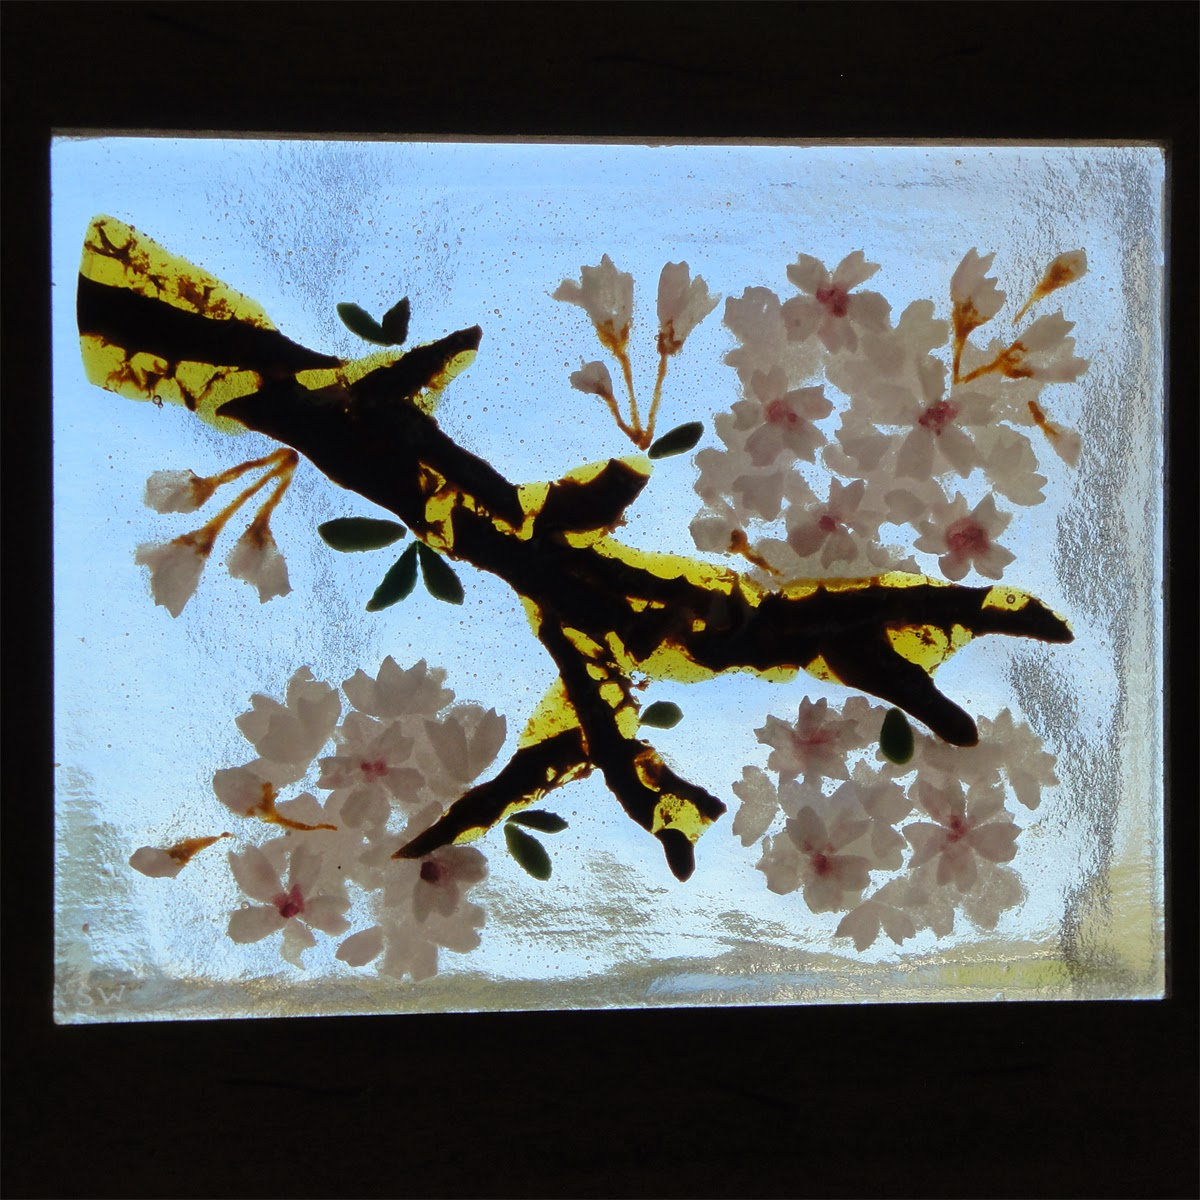 fused stained glass sakura cherry blossom flower flowers petals pink blooms on window flutterbyfoto flutterbybutterfly